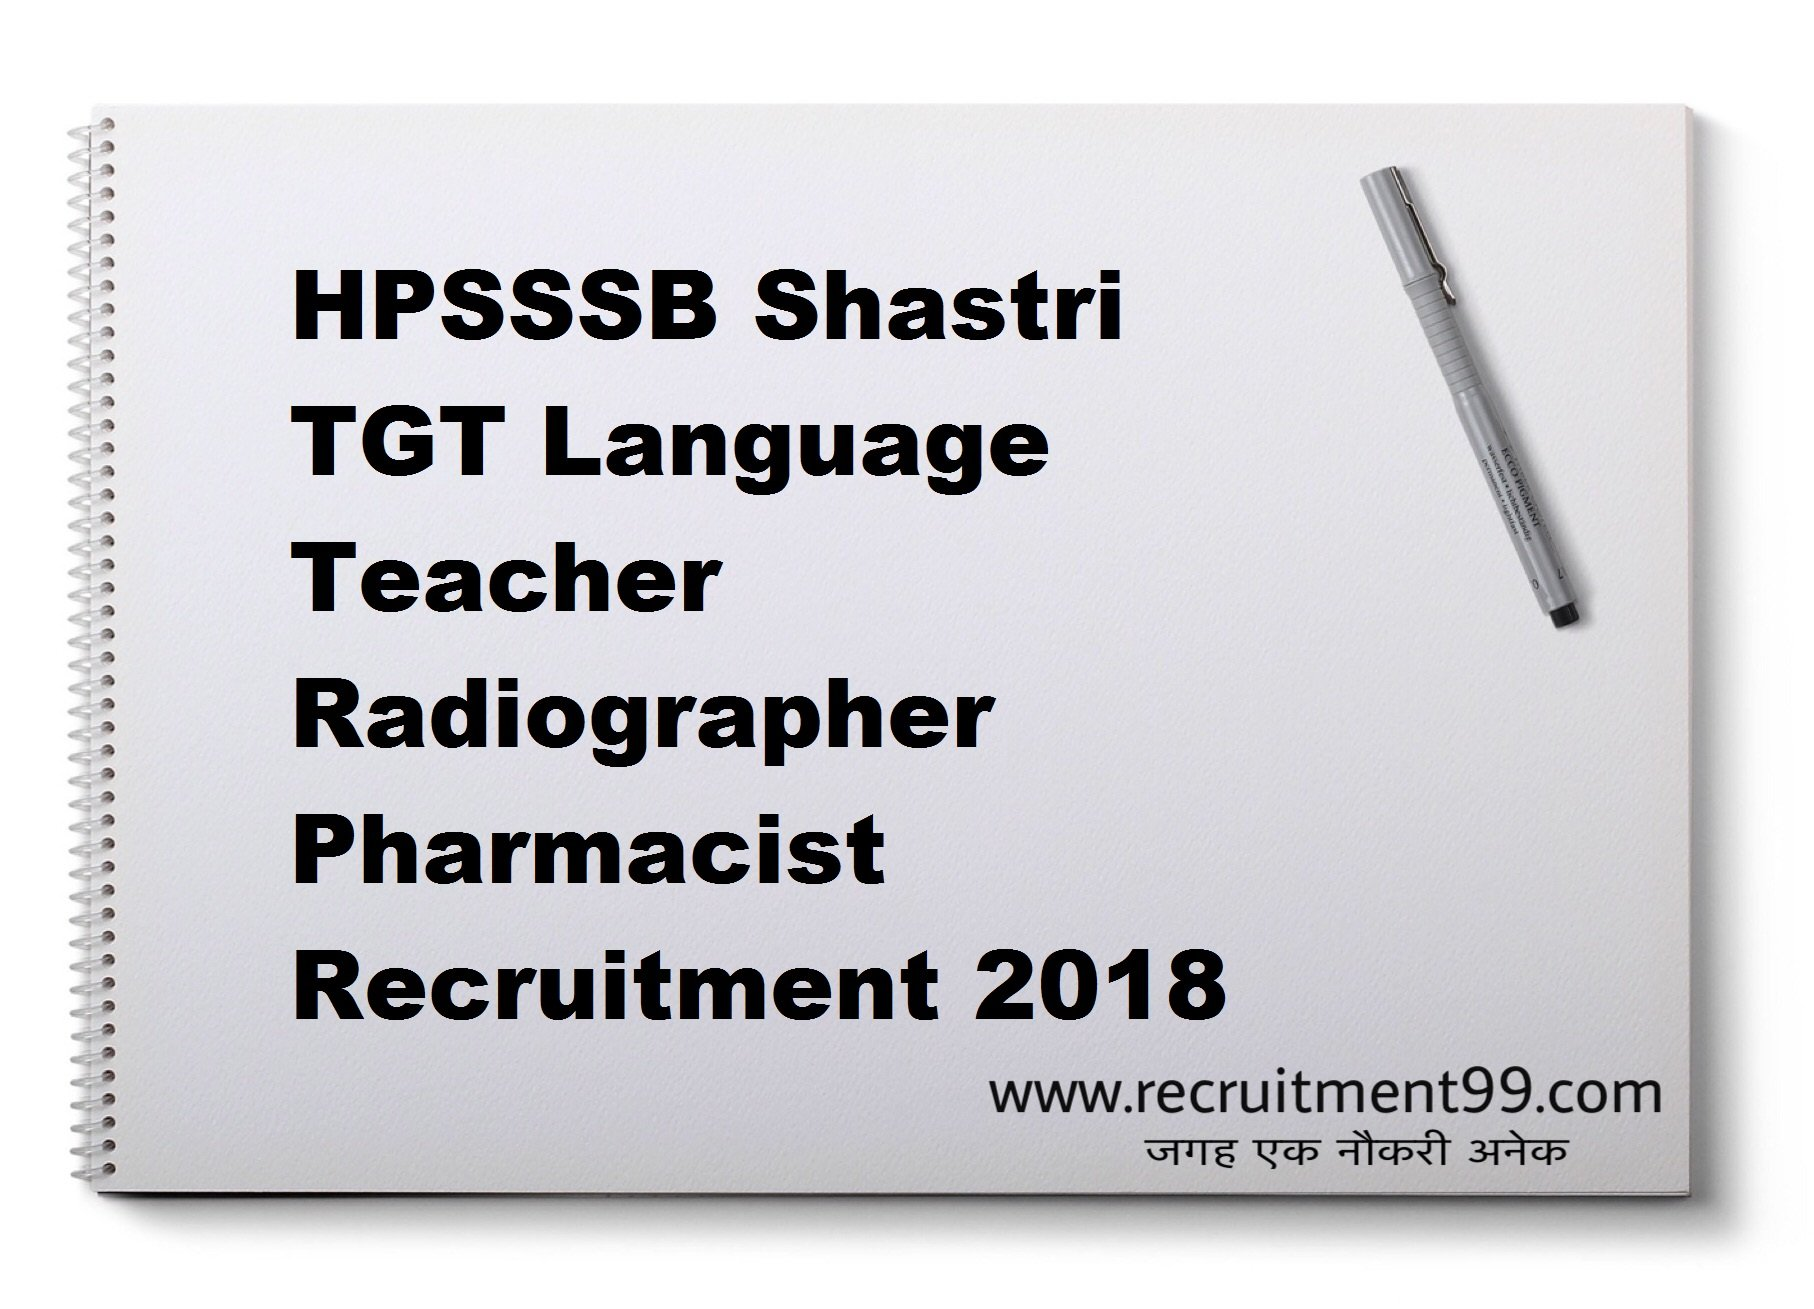 HPSSSB Shastri TGT Language Teacher Radiographer Pharmacist Recruitment Admit Card Result 2018